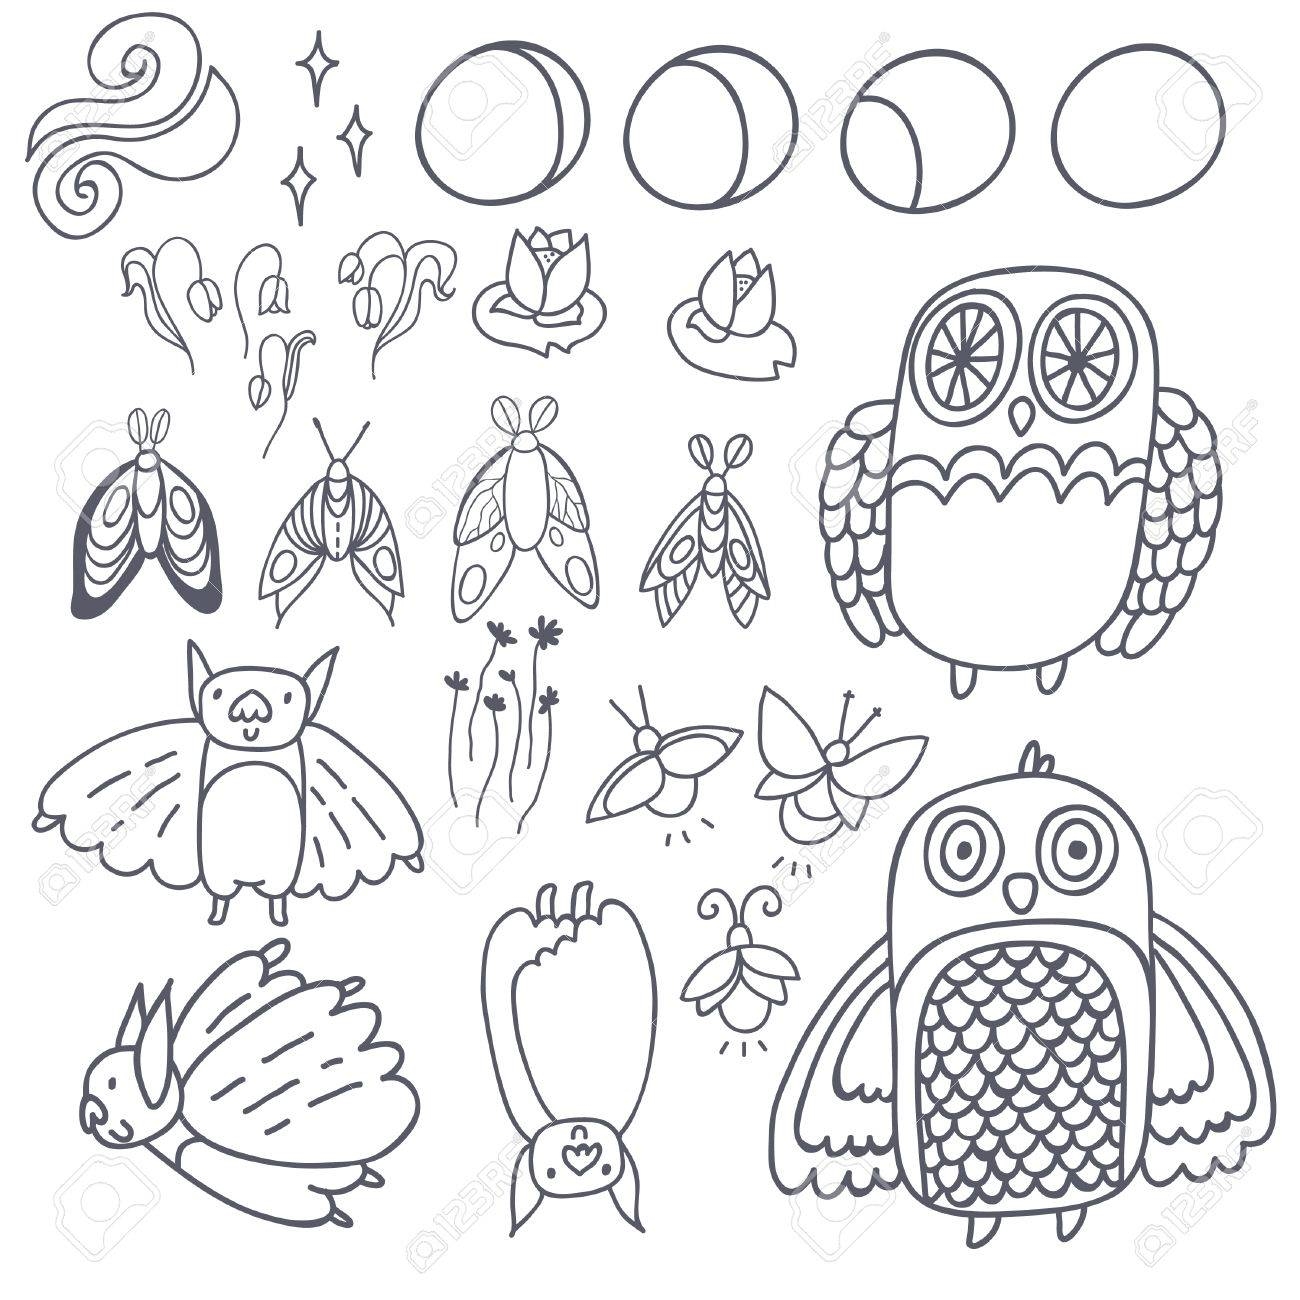 1300x1300 Night Creatures Outline Vector Set With Adorable Owls, Bats